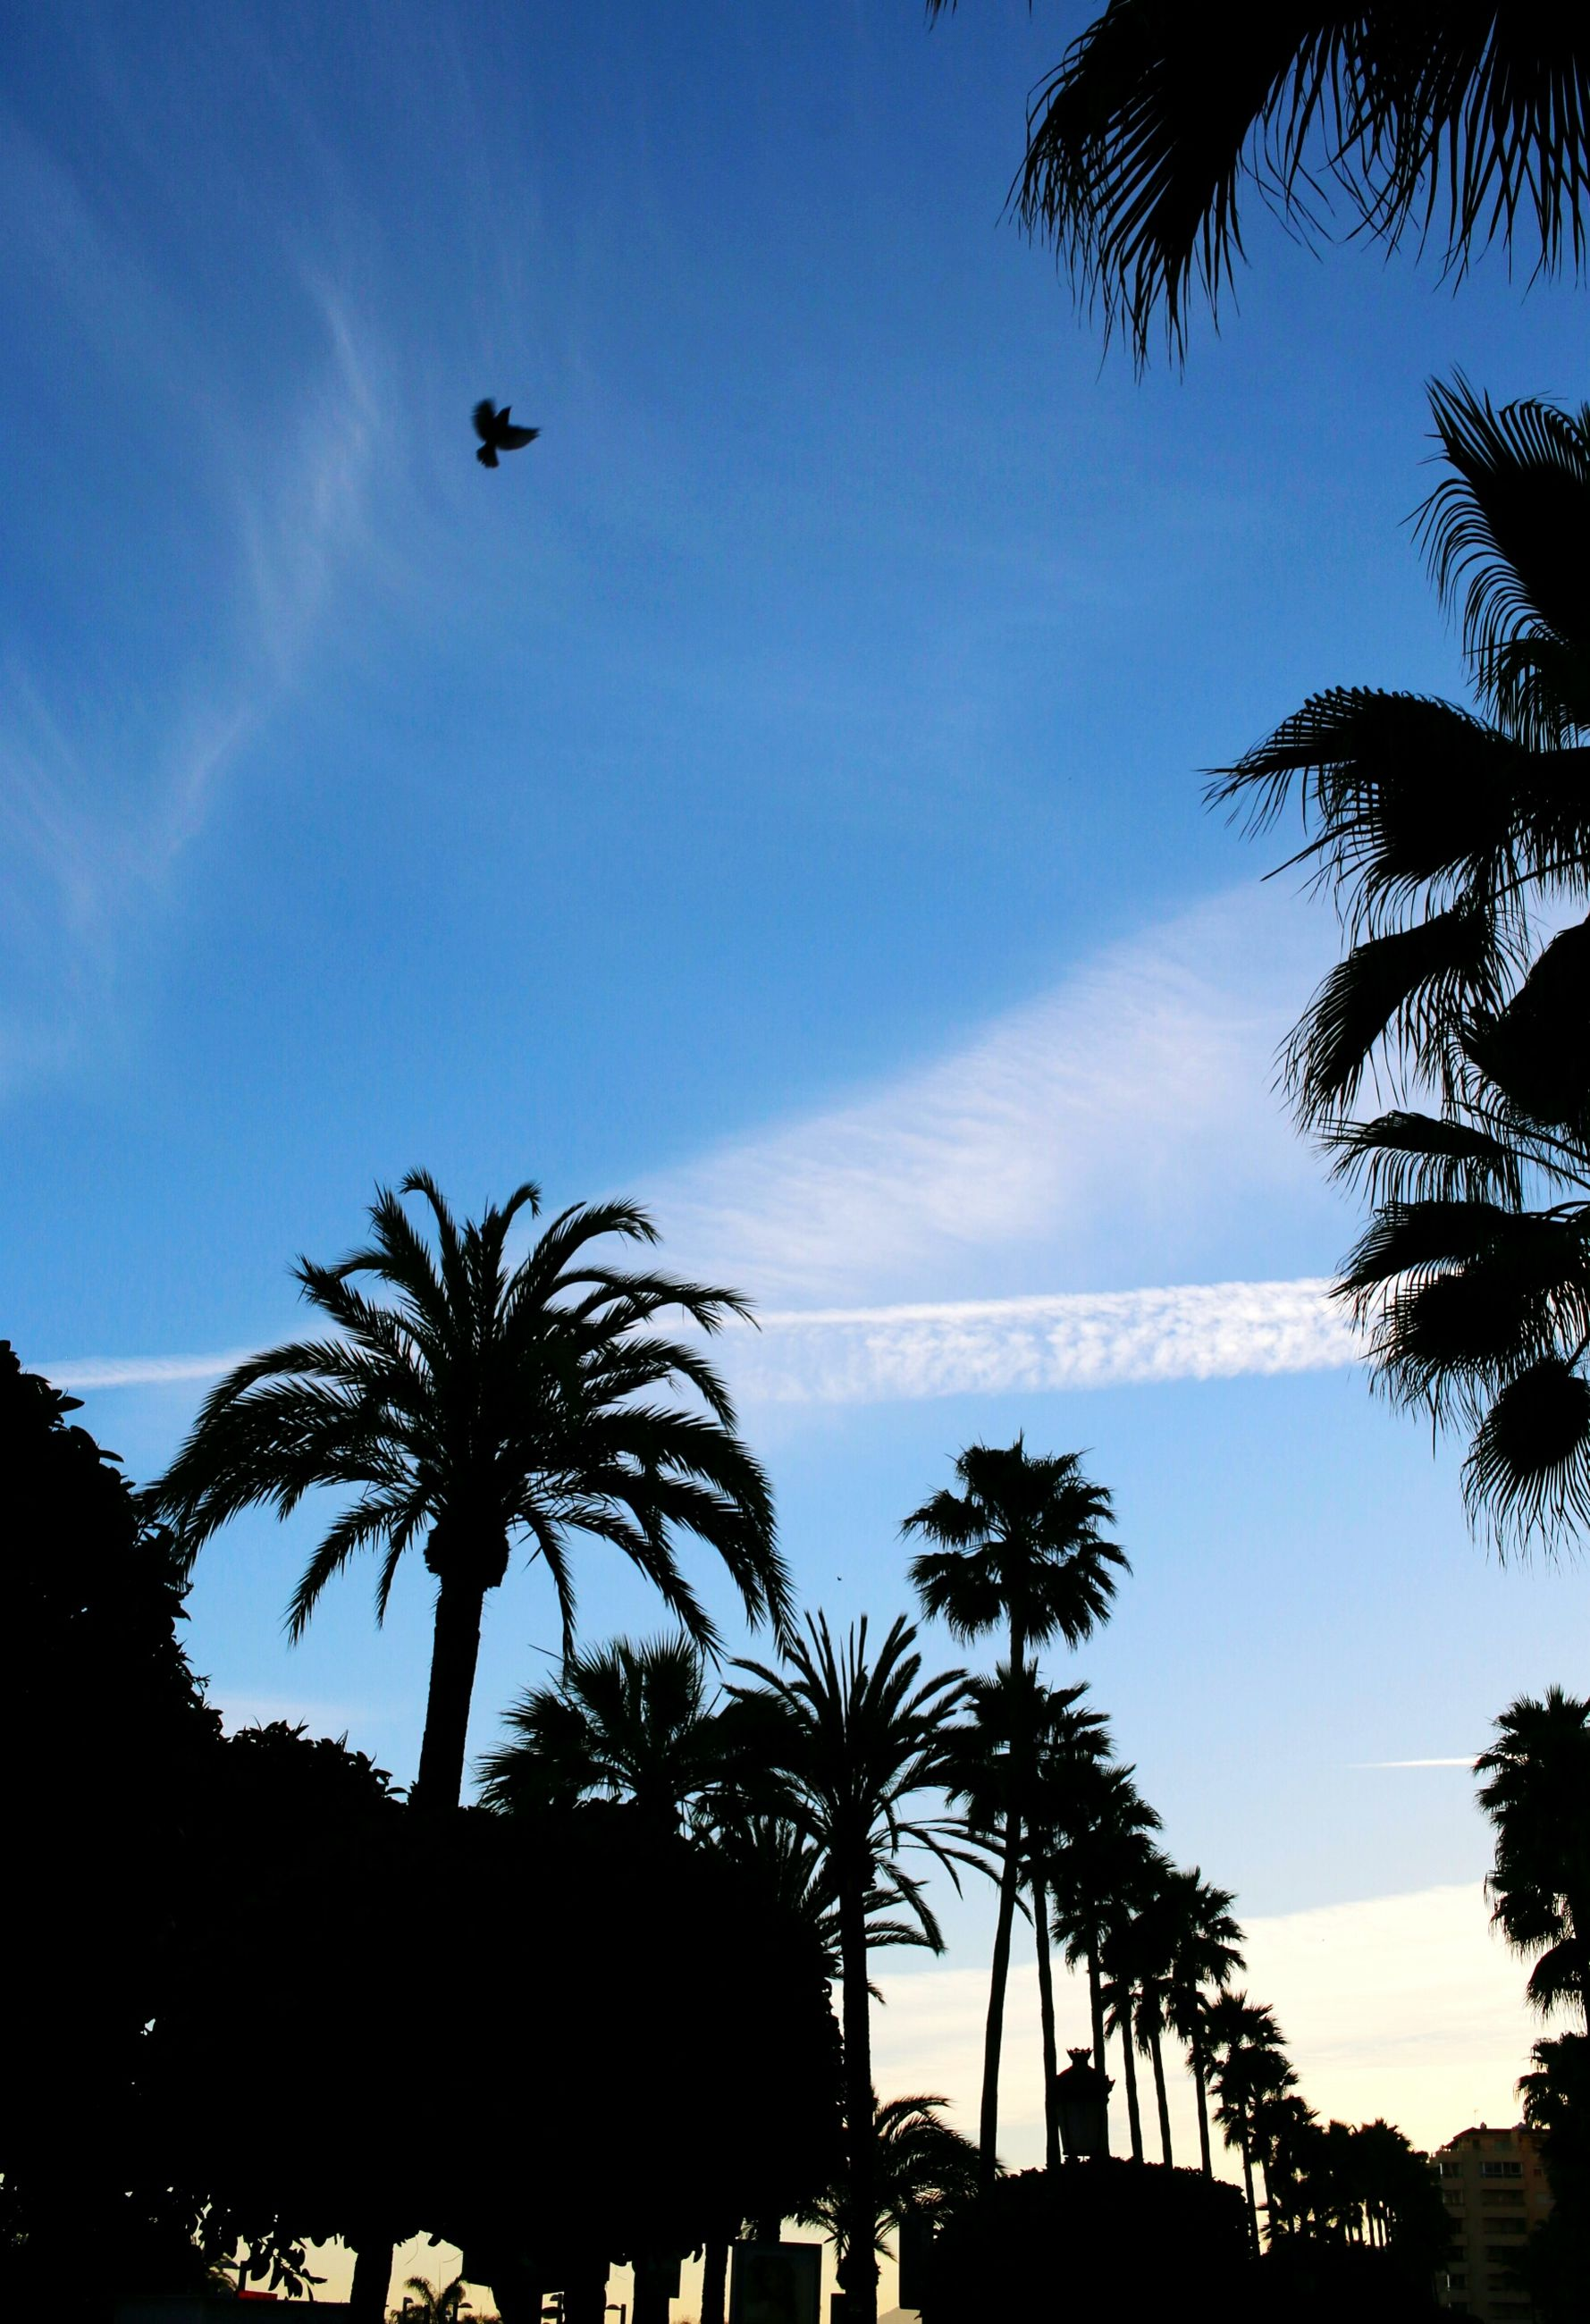 palm tree, tree, silhouette, sky, blue, sea, tranquility, scenics, tranquil scene, beauty in nature, nature, low angle view, flying, transportation, beach, horizon over water, mode of transport, growth, coconut palm tree, outdoors